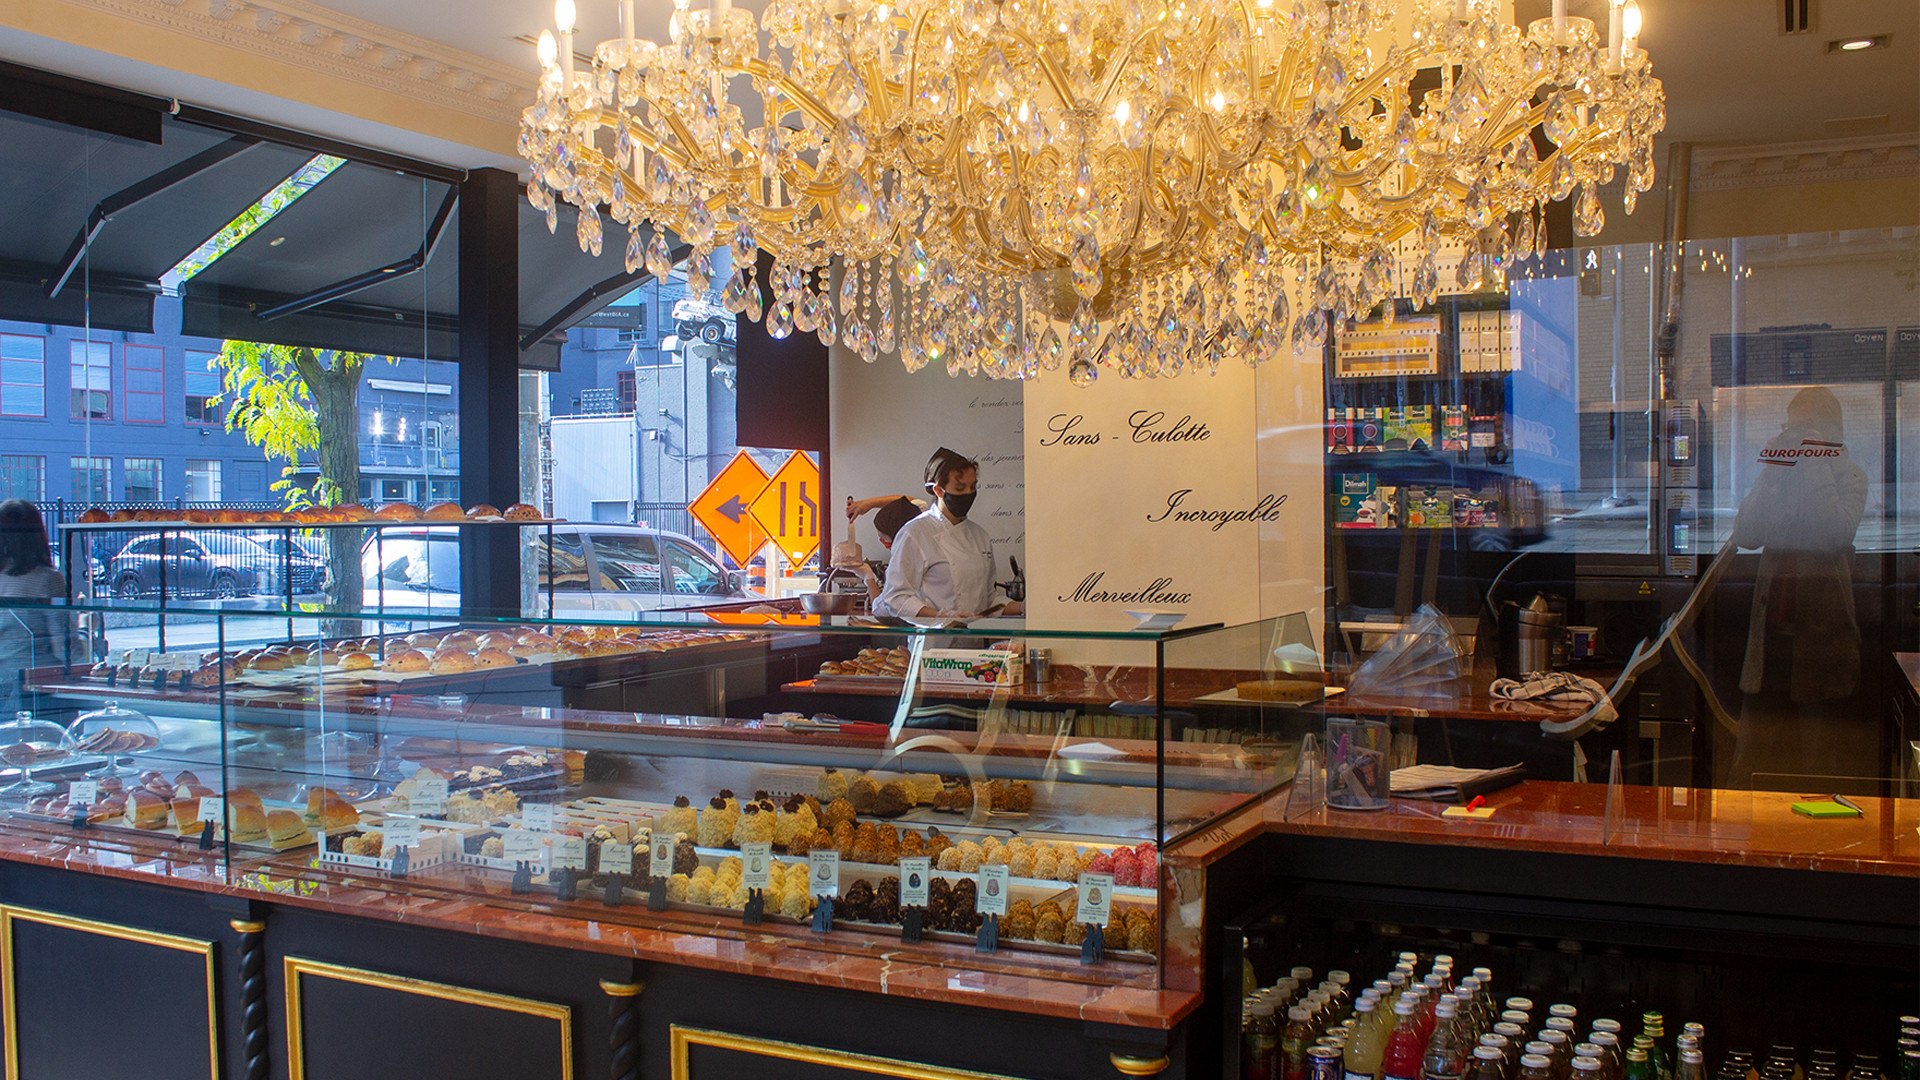 The pastry case at Marvelous by Fred